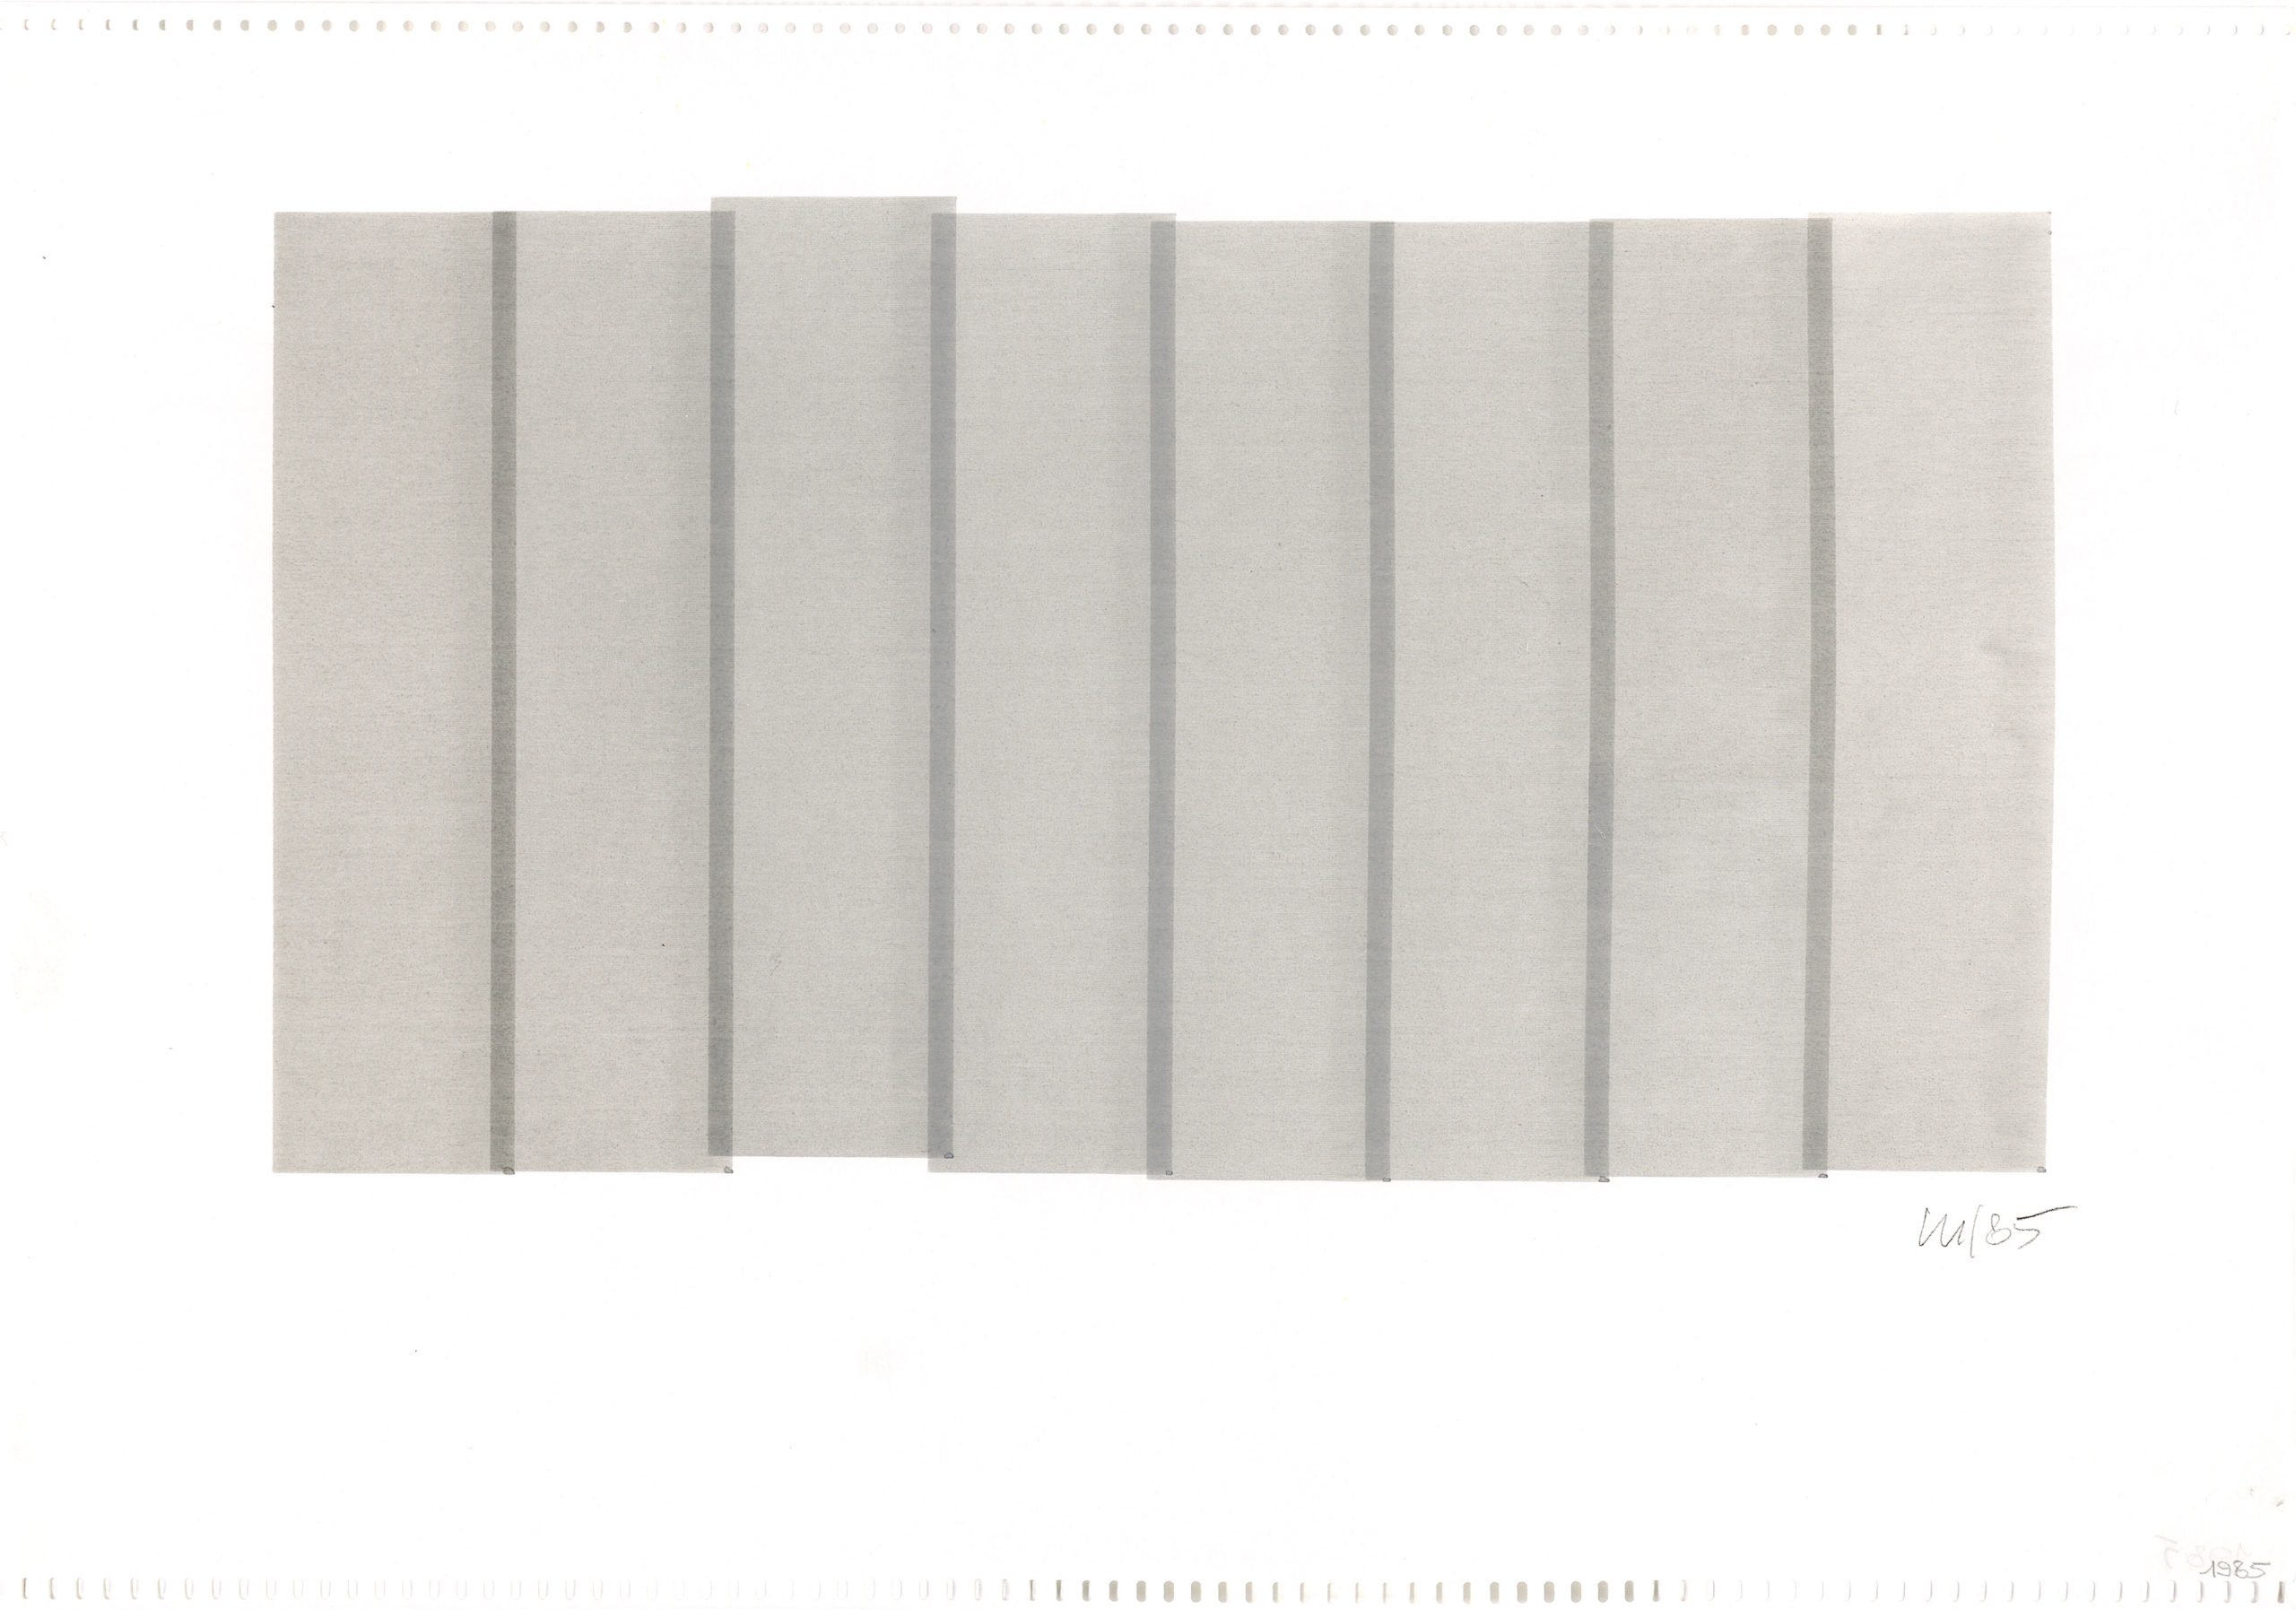 Vera Molnar, 8 Colonnes (vertical), plotter drawing, 19 x 33, 1985